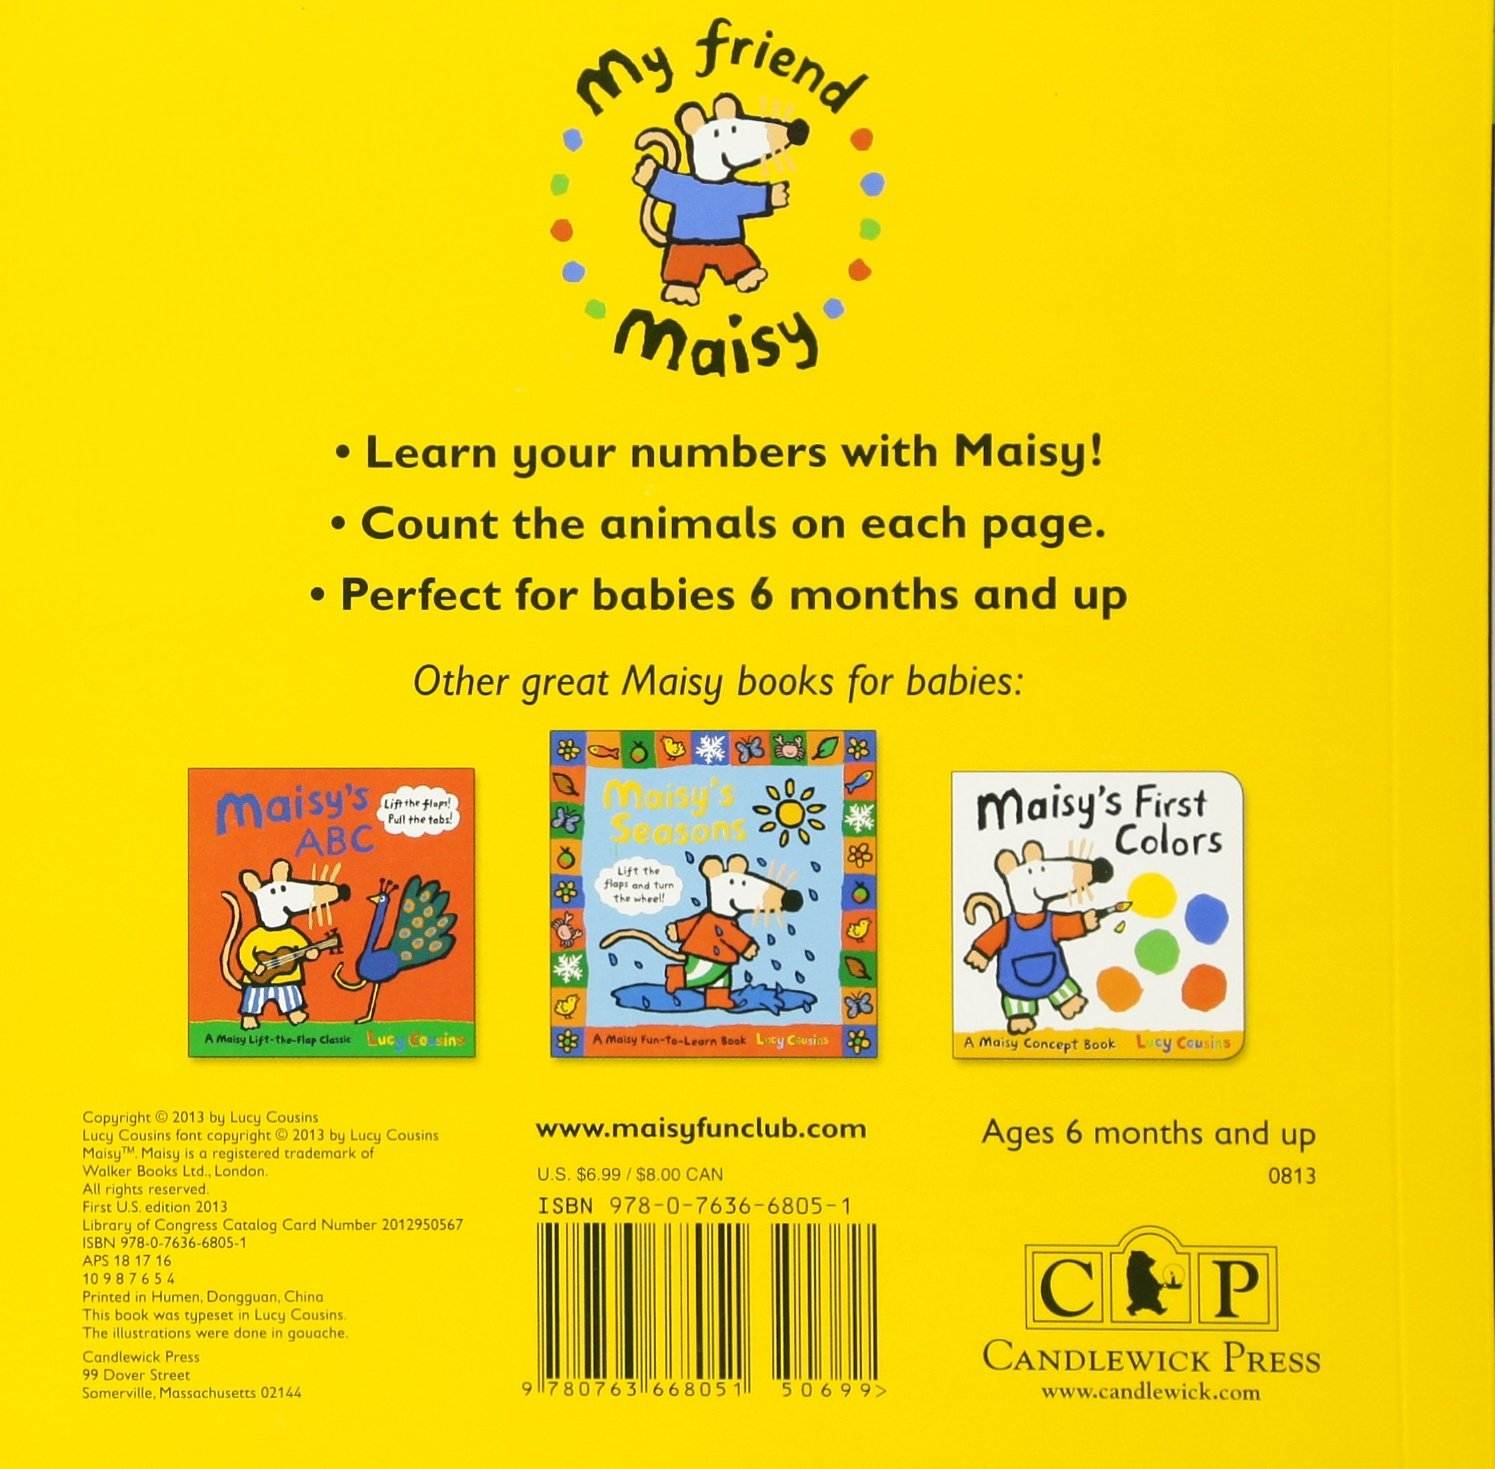 Amazon.com: Maisy's First Numbers: A Maisy Concept Book (9780763668051):  Lucy Cousins, Lucy Cousins: Books